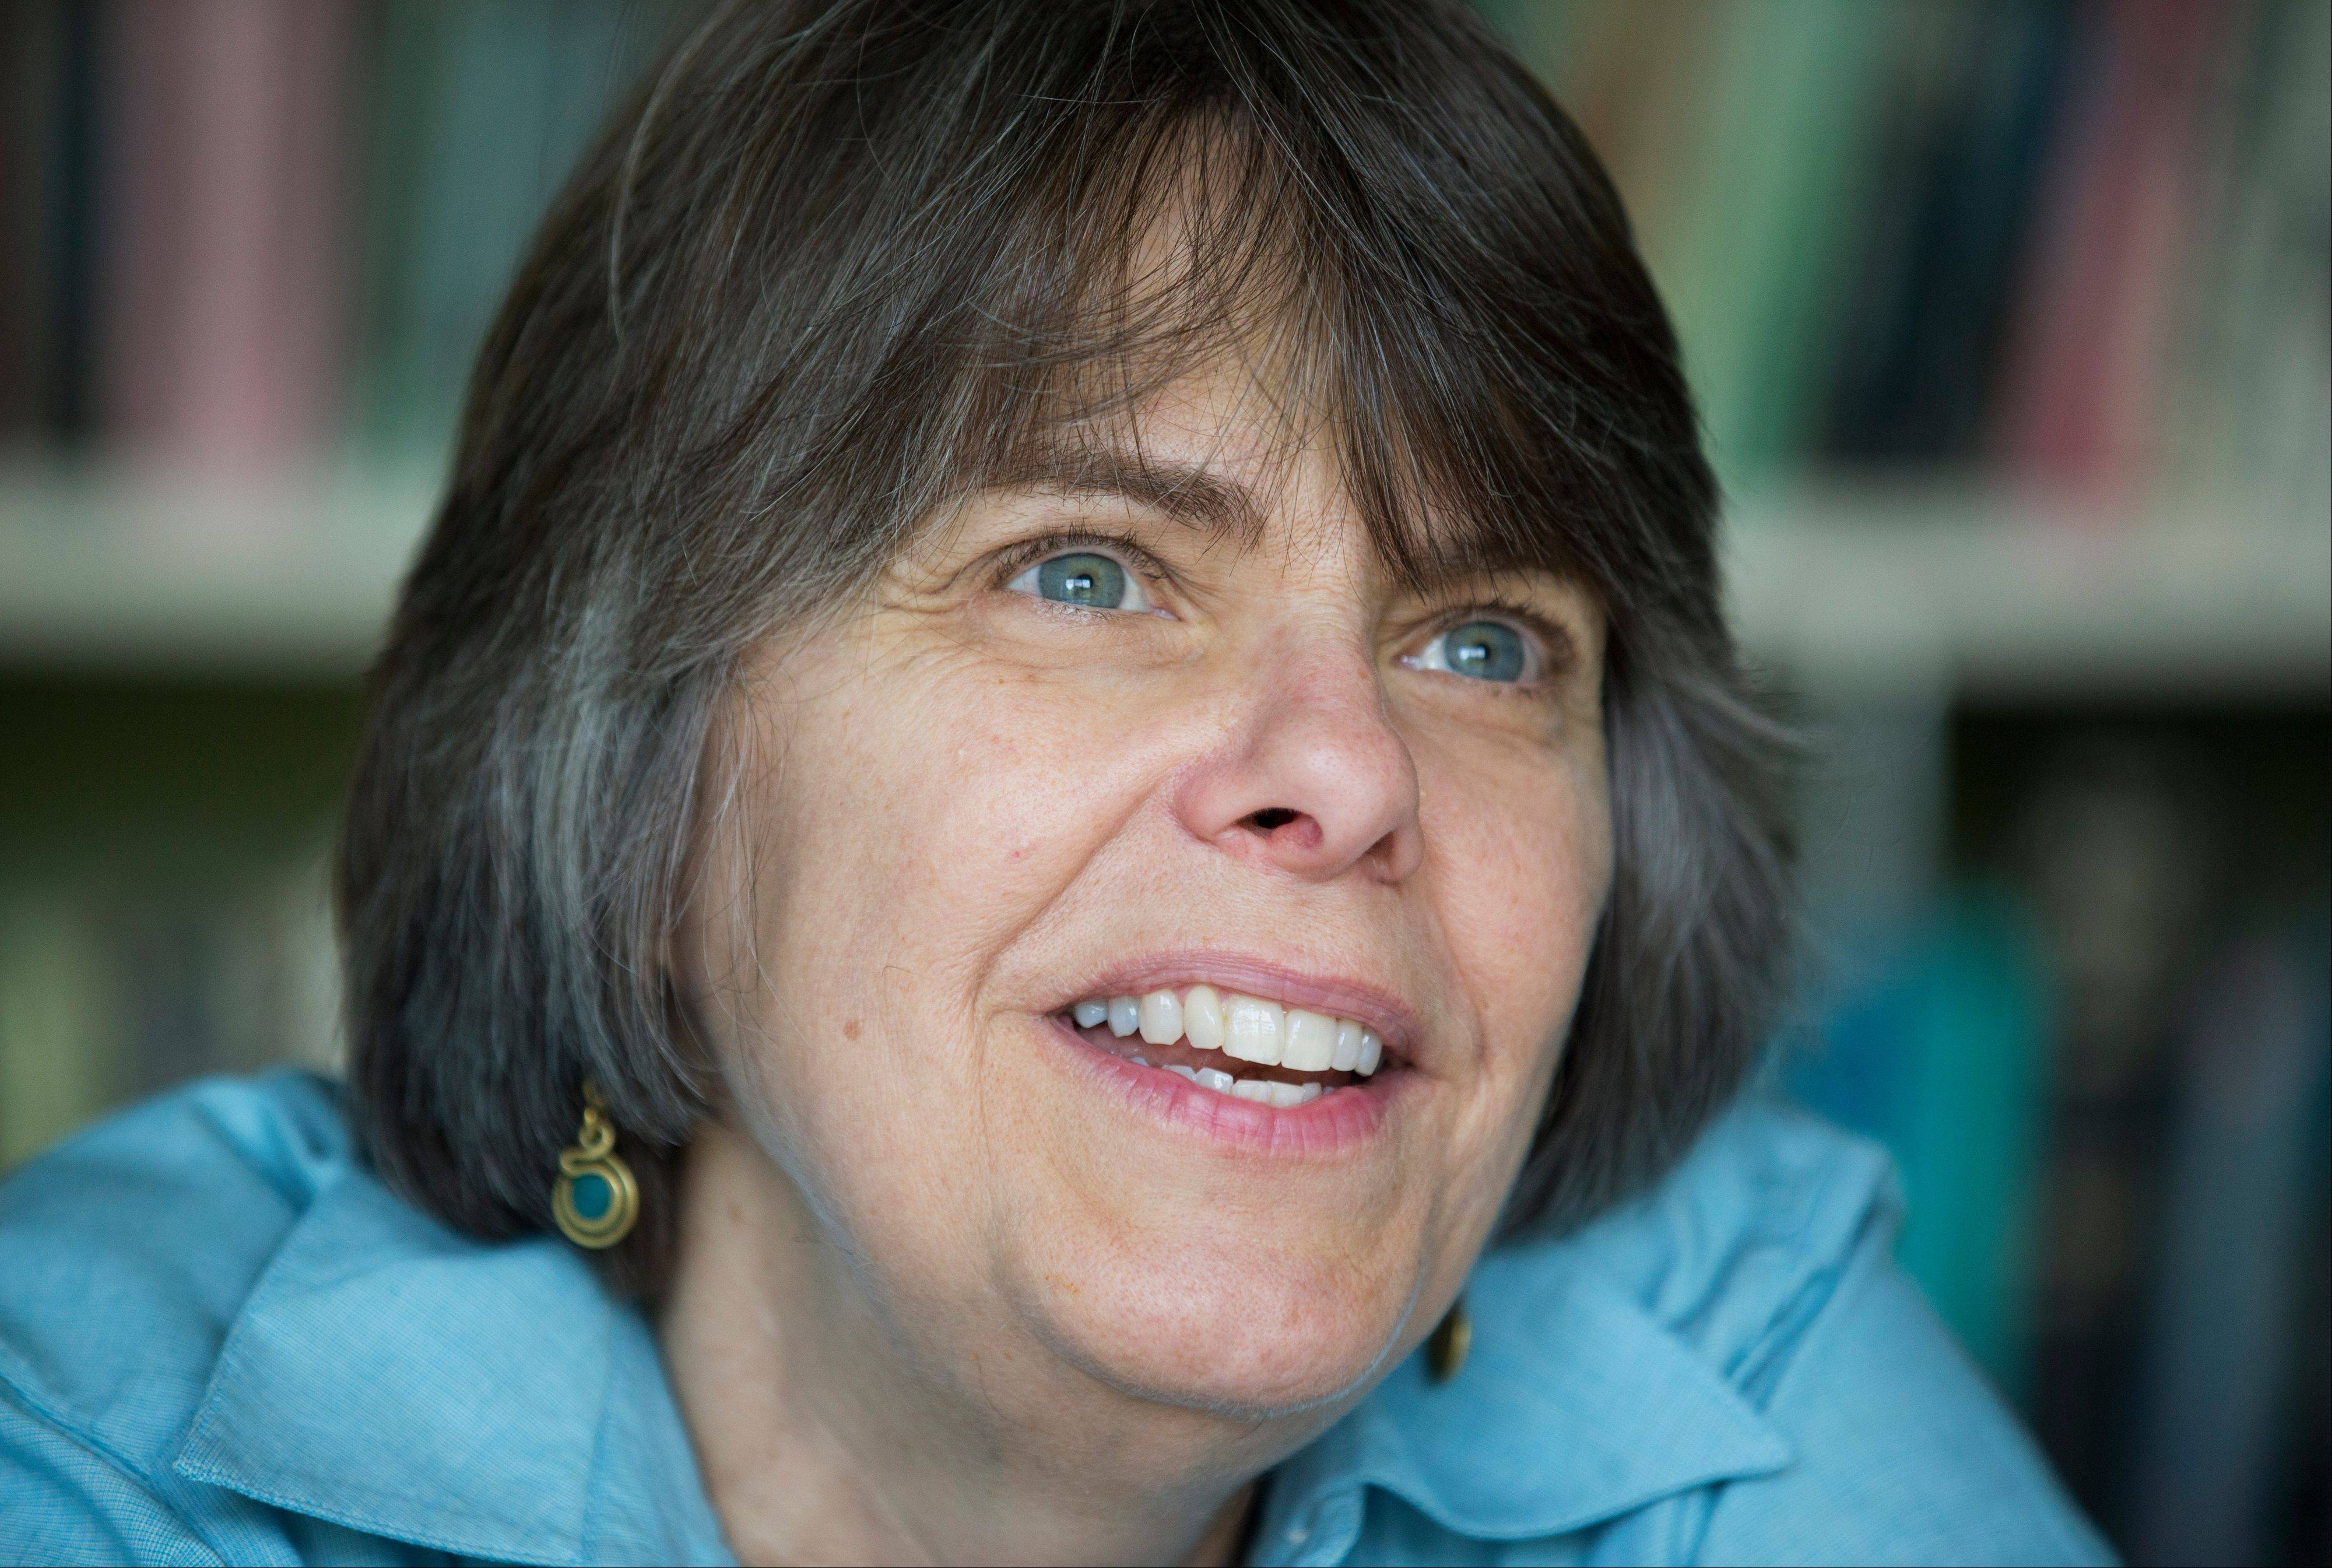 Mary Beth Tinker, 61, was just 13 when she spoke out against the Vietnam War by wearing a black armband to her Iowa school in 1965. When the school suspended her, she took her free speech case all the way to the U.S. Supreme Court and won.